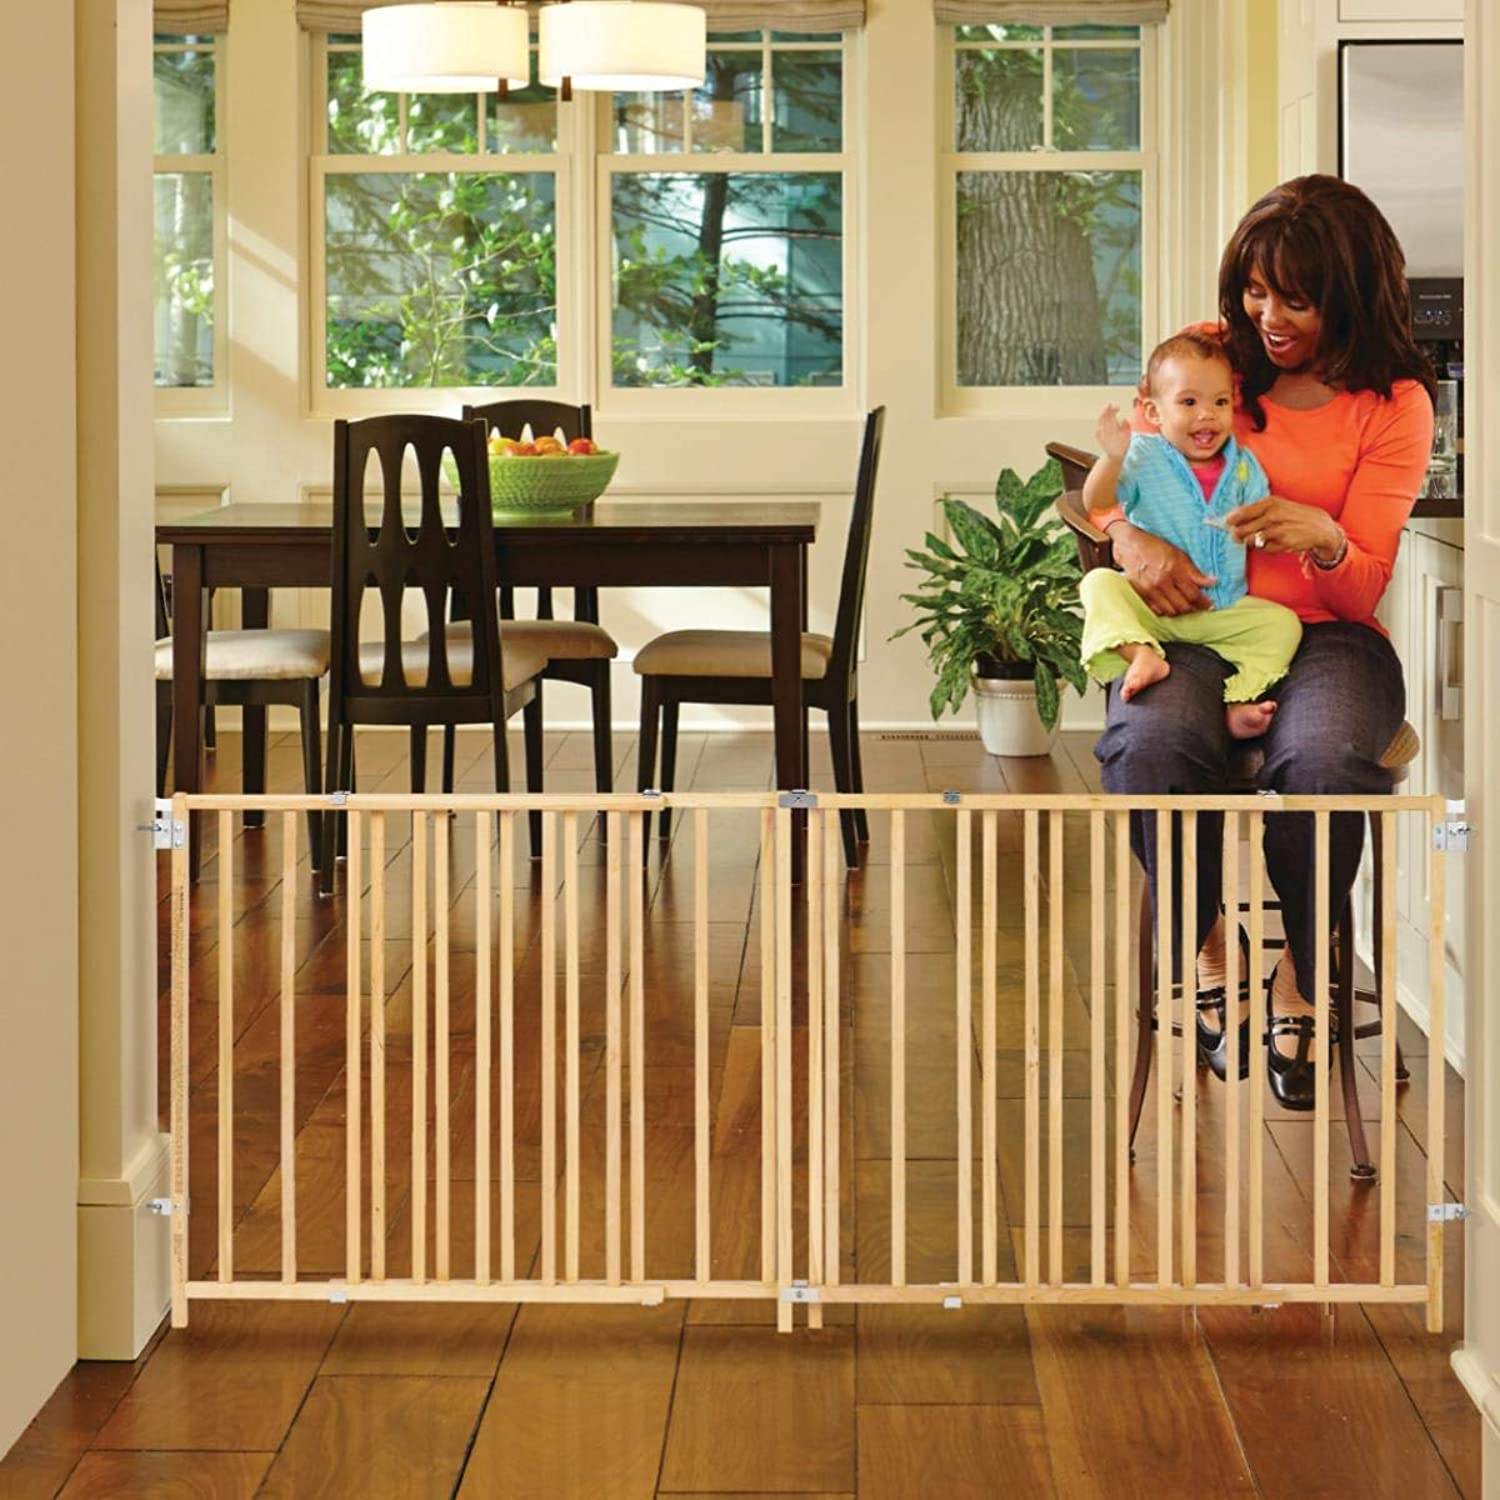 North States 103  Wide ExtraWide Swing Baby Gate  Perfect for Oversized Spaces. No Threshold and oneHand Operation. Hardware Mount. Fits 60 103  Wide (27  Tall, Sustainable Hardwood)